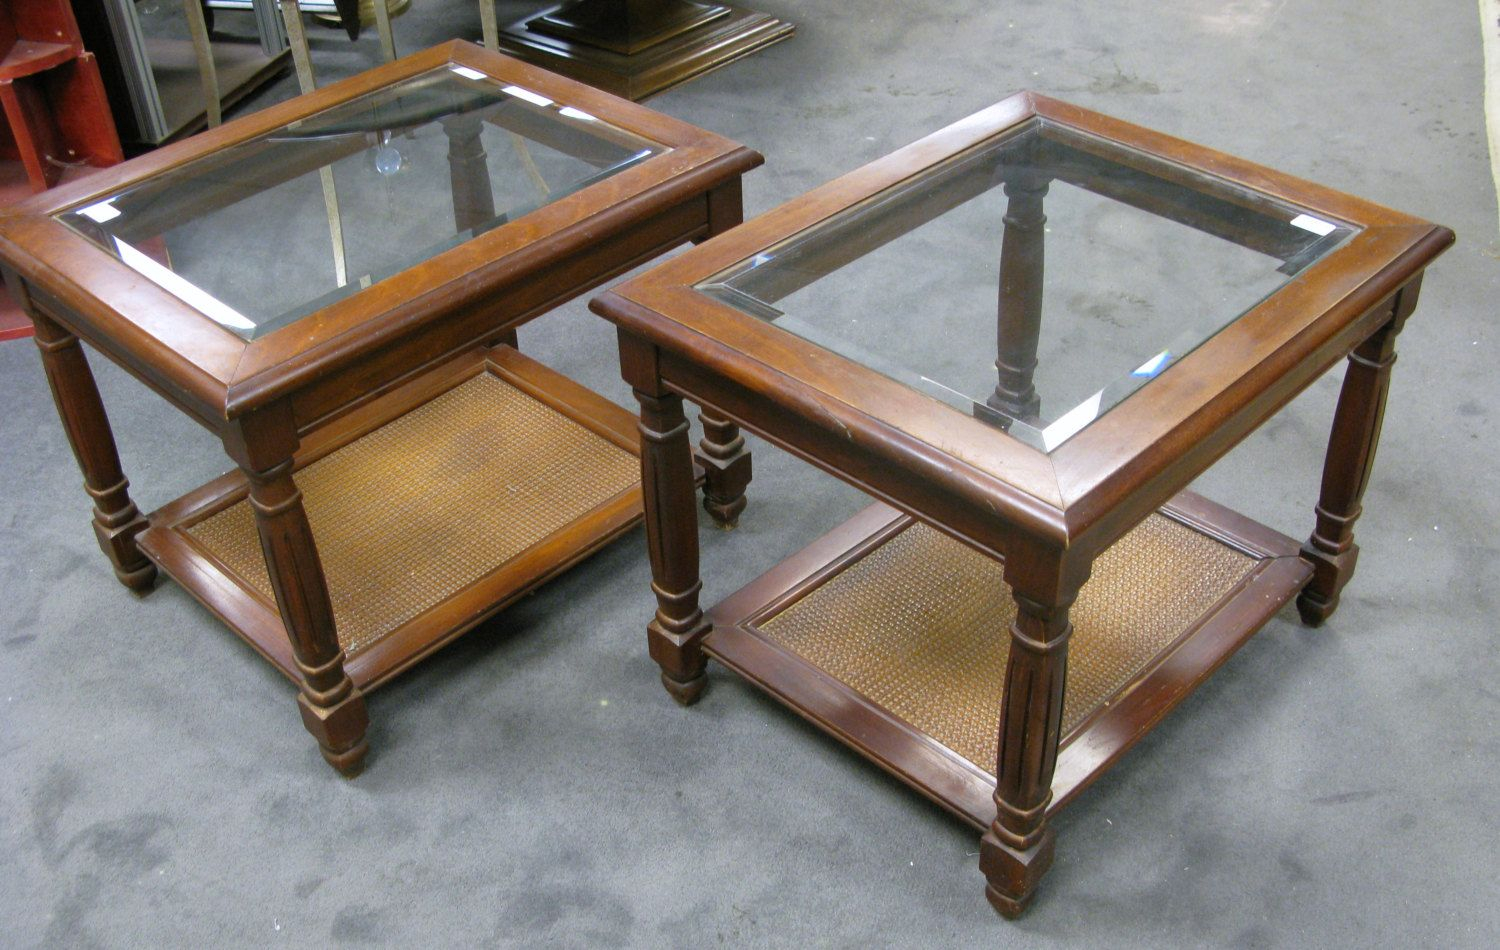 Cherry Wood End Tables With Glass Top Doces Abobrinhas Wood End pertaining to measurements 1500 X 950